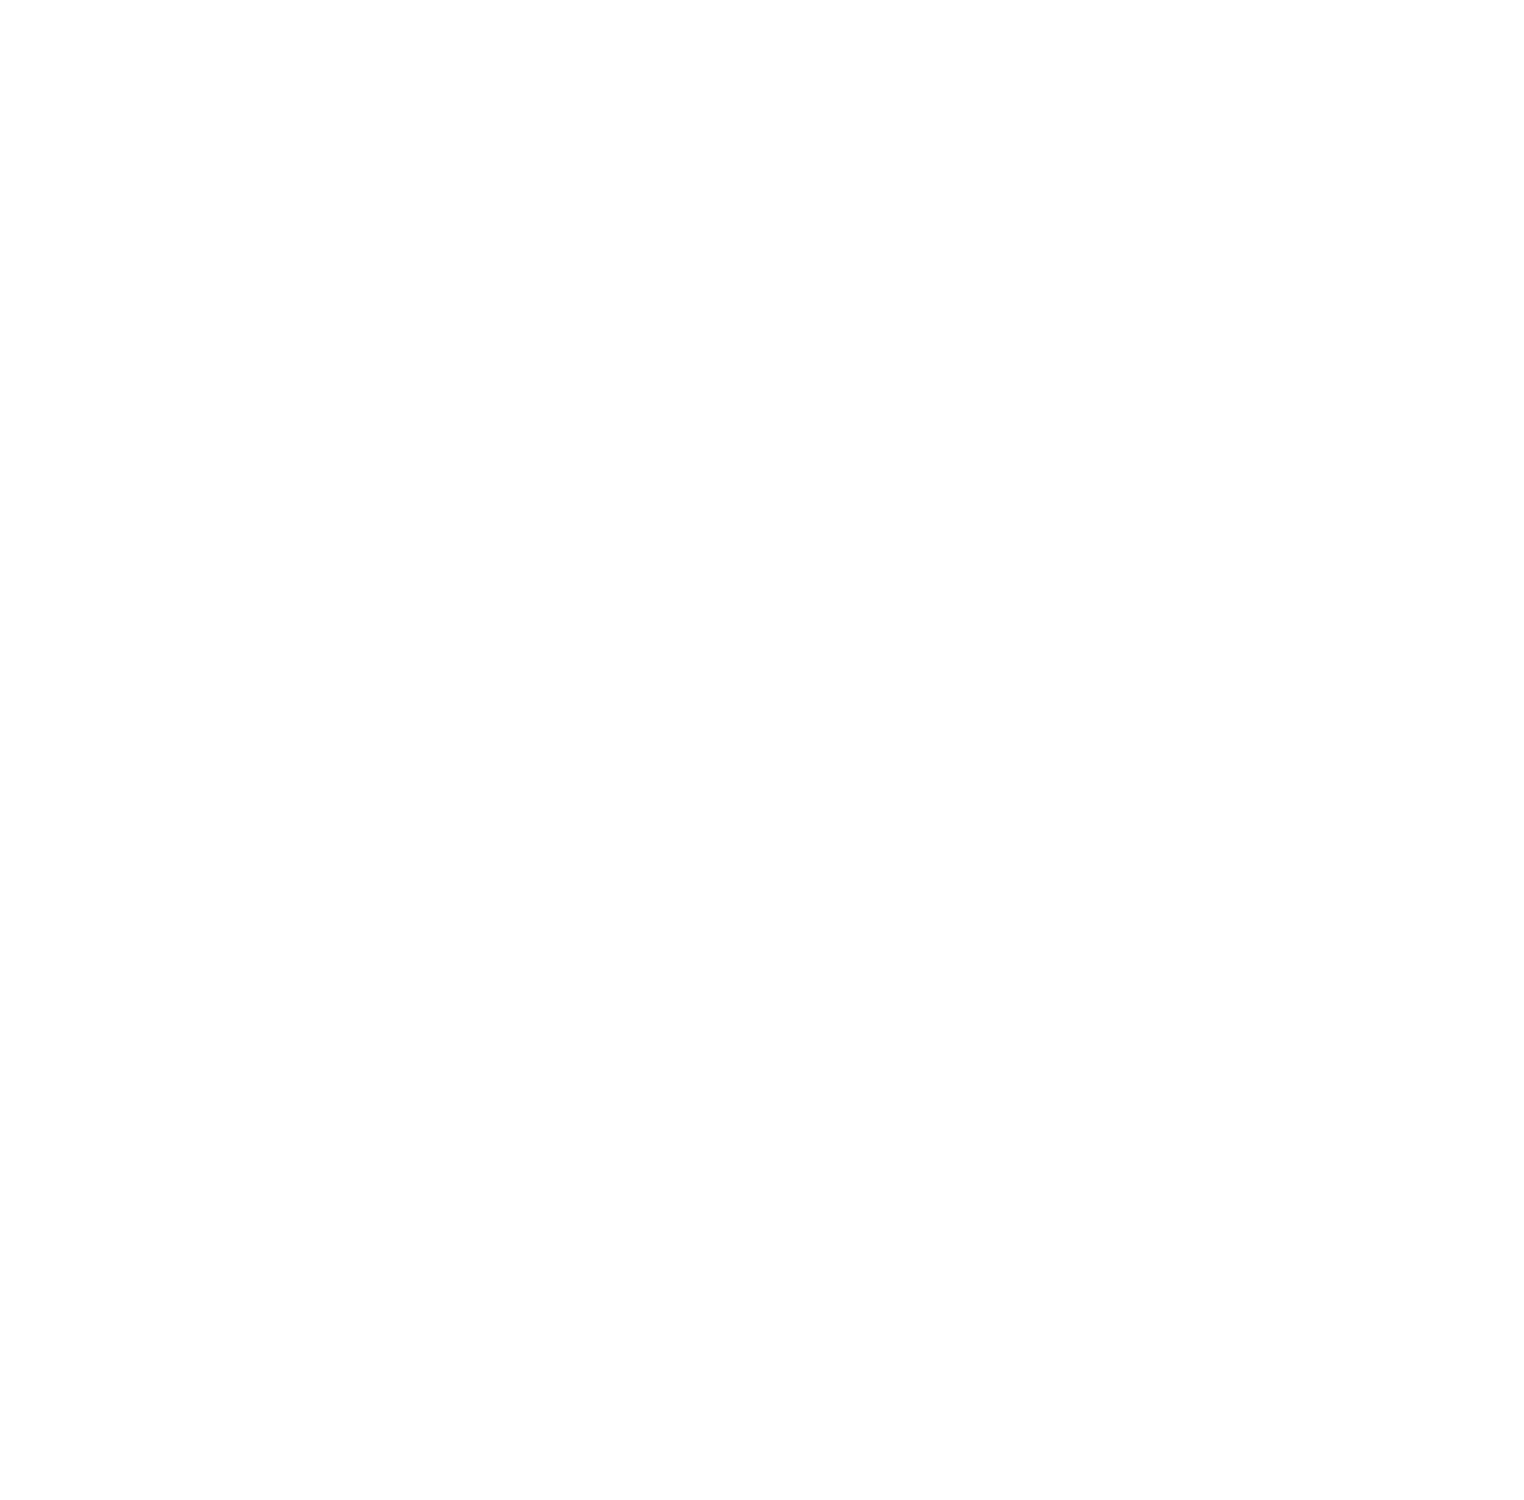 1979.png